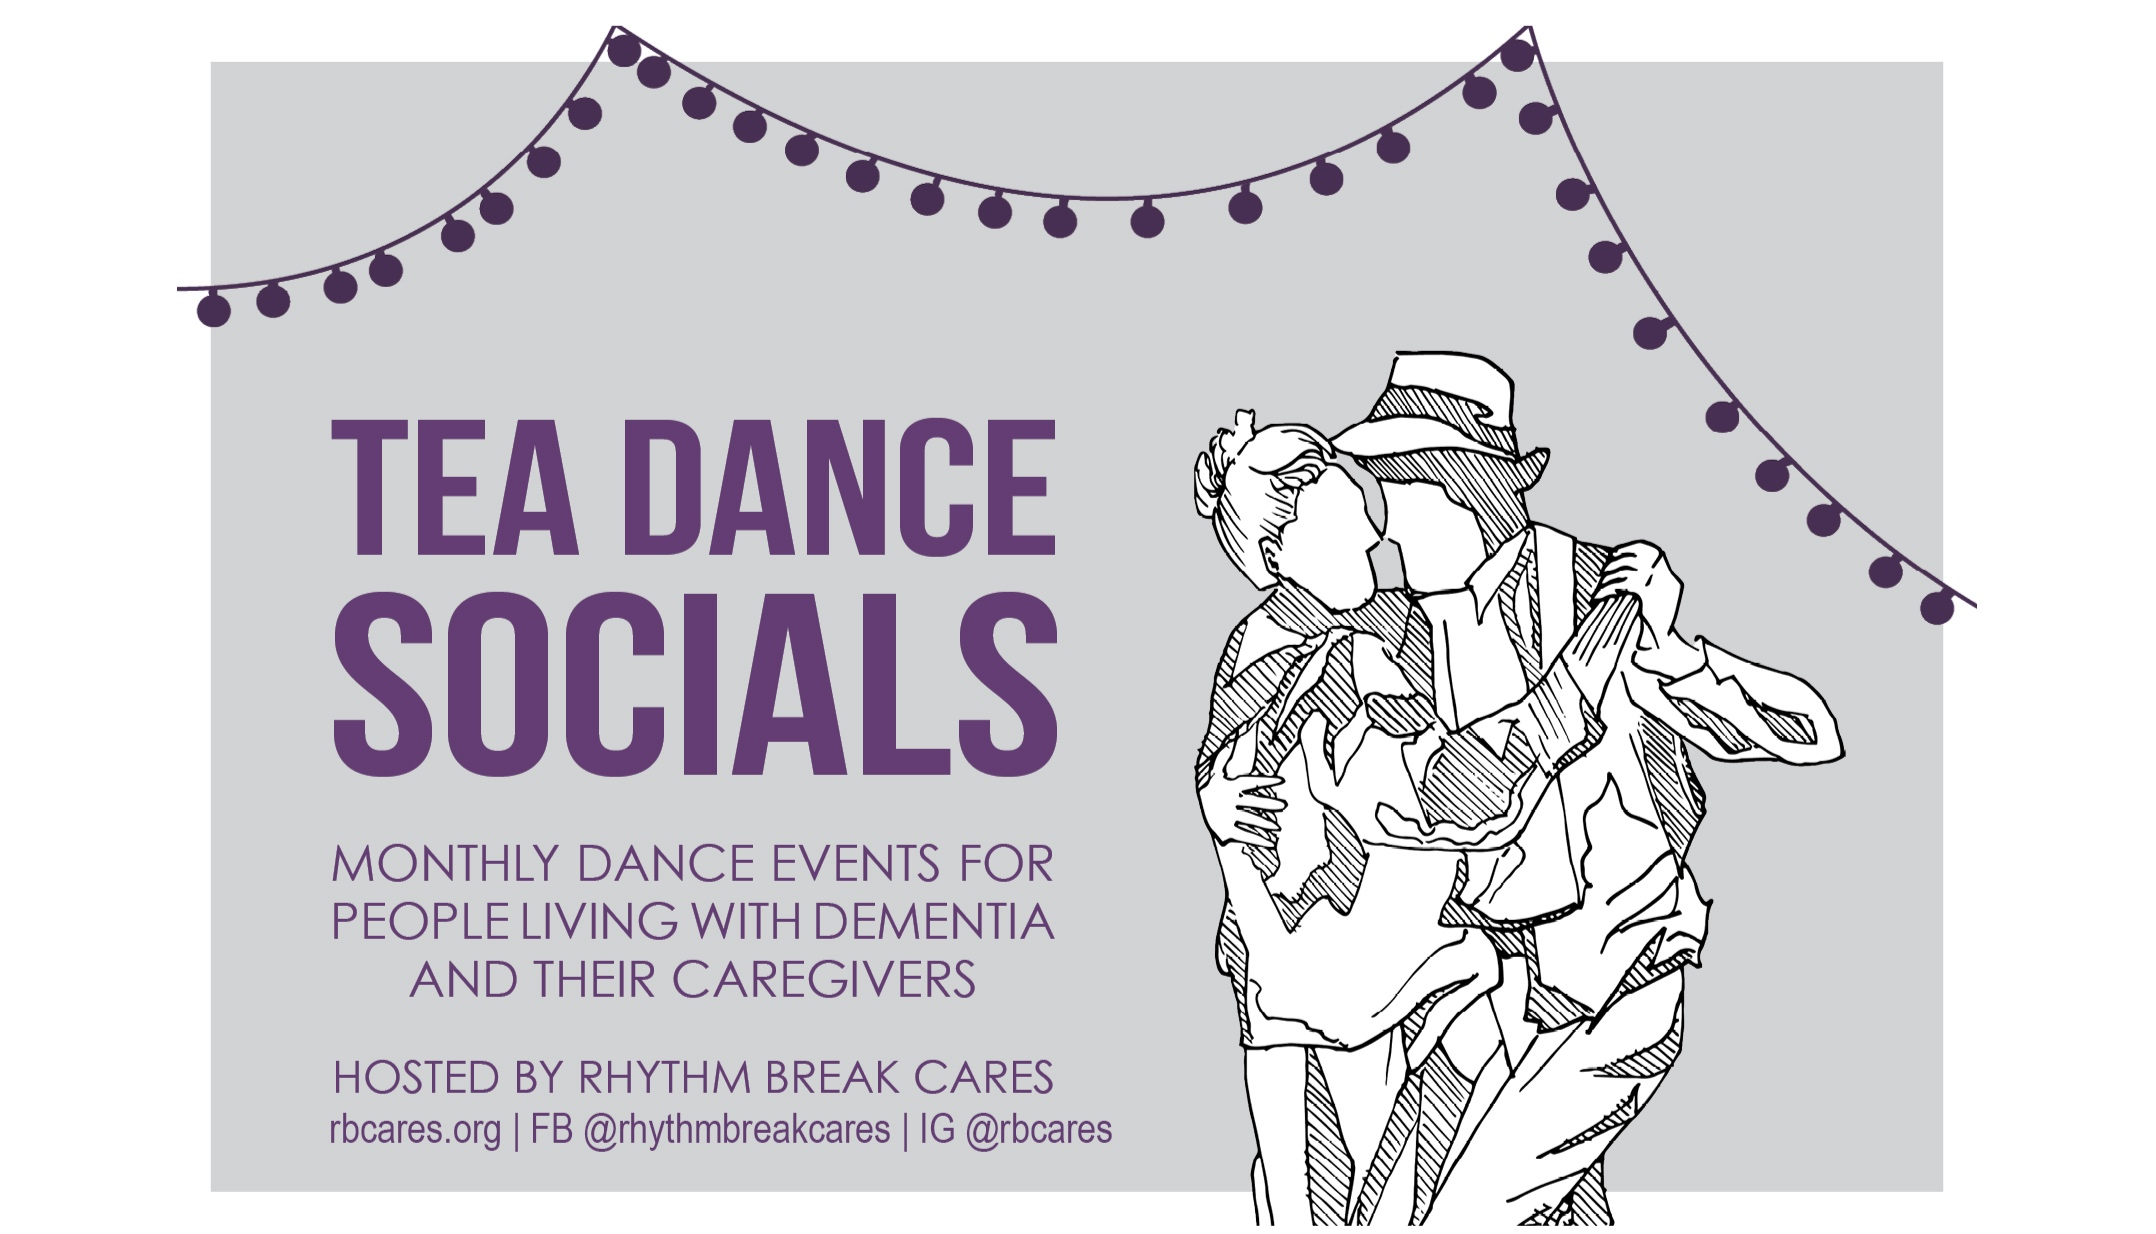 Dance with us to #EndAlz! - NEXT DANCE // Wed AUG 14 & SEPT 18 at 1261 Broadway, Suite 309. FREE (suggested donation $10-$15)!Email us to RSVP: rbcares@gmail.com